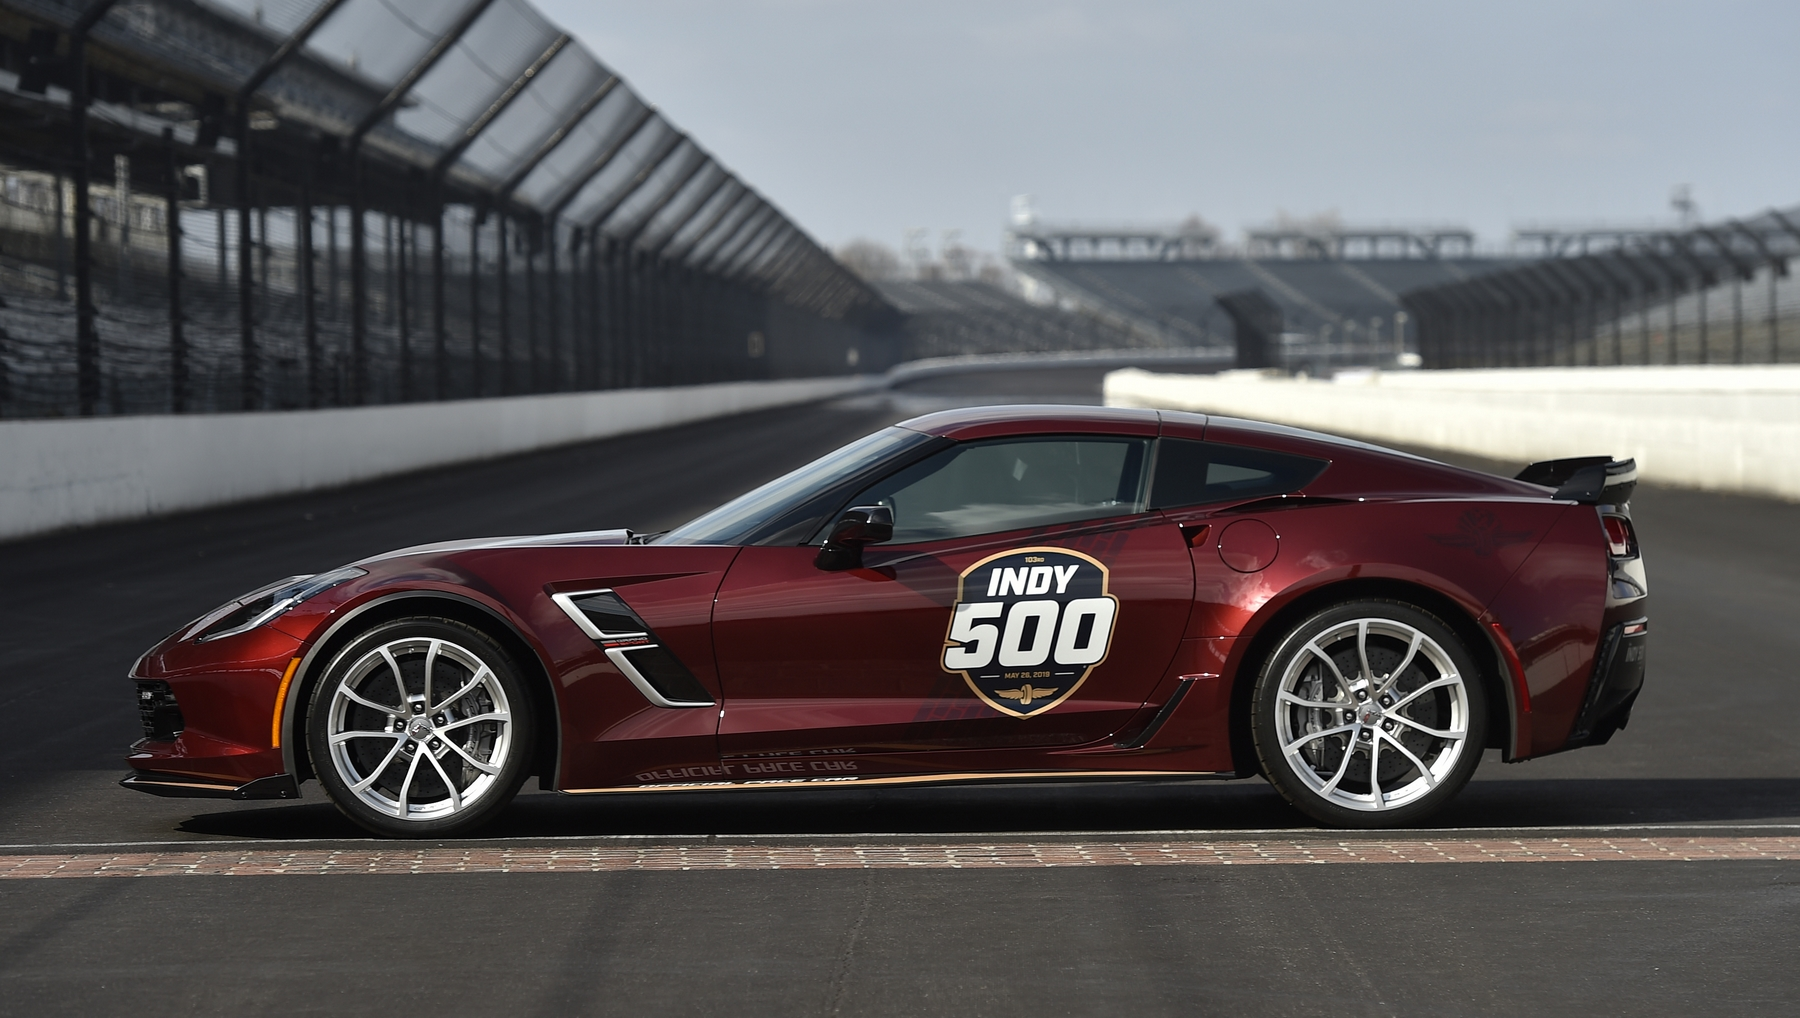 The 2019 Corvette Grand Sport served as the Official Pace Car for the 2019 Indianapolis 500 presented by Gainbridge, leading 33 drivers to the green flag on May 26 for the 103rd running of the legendary race.